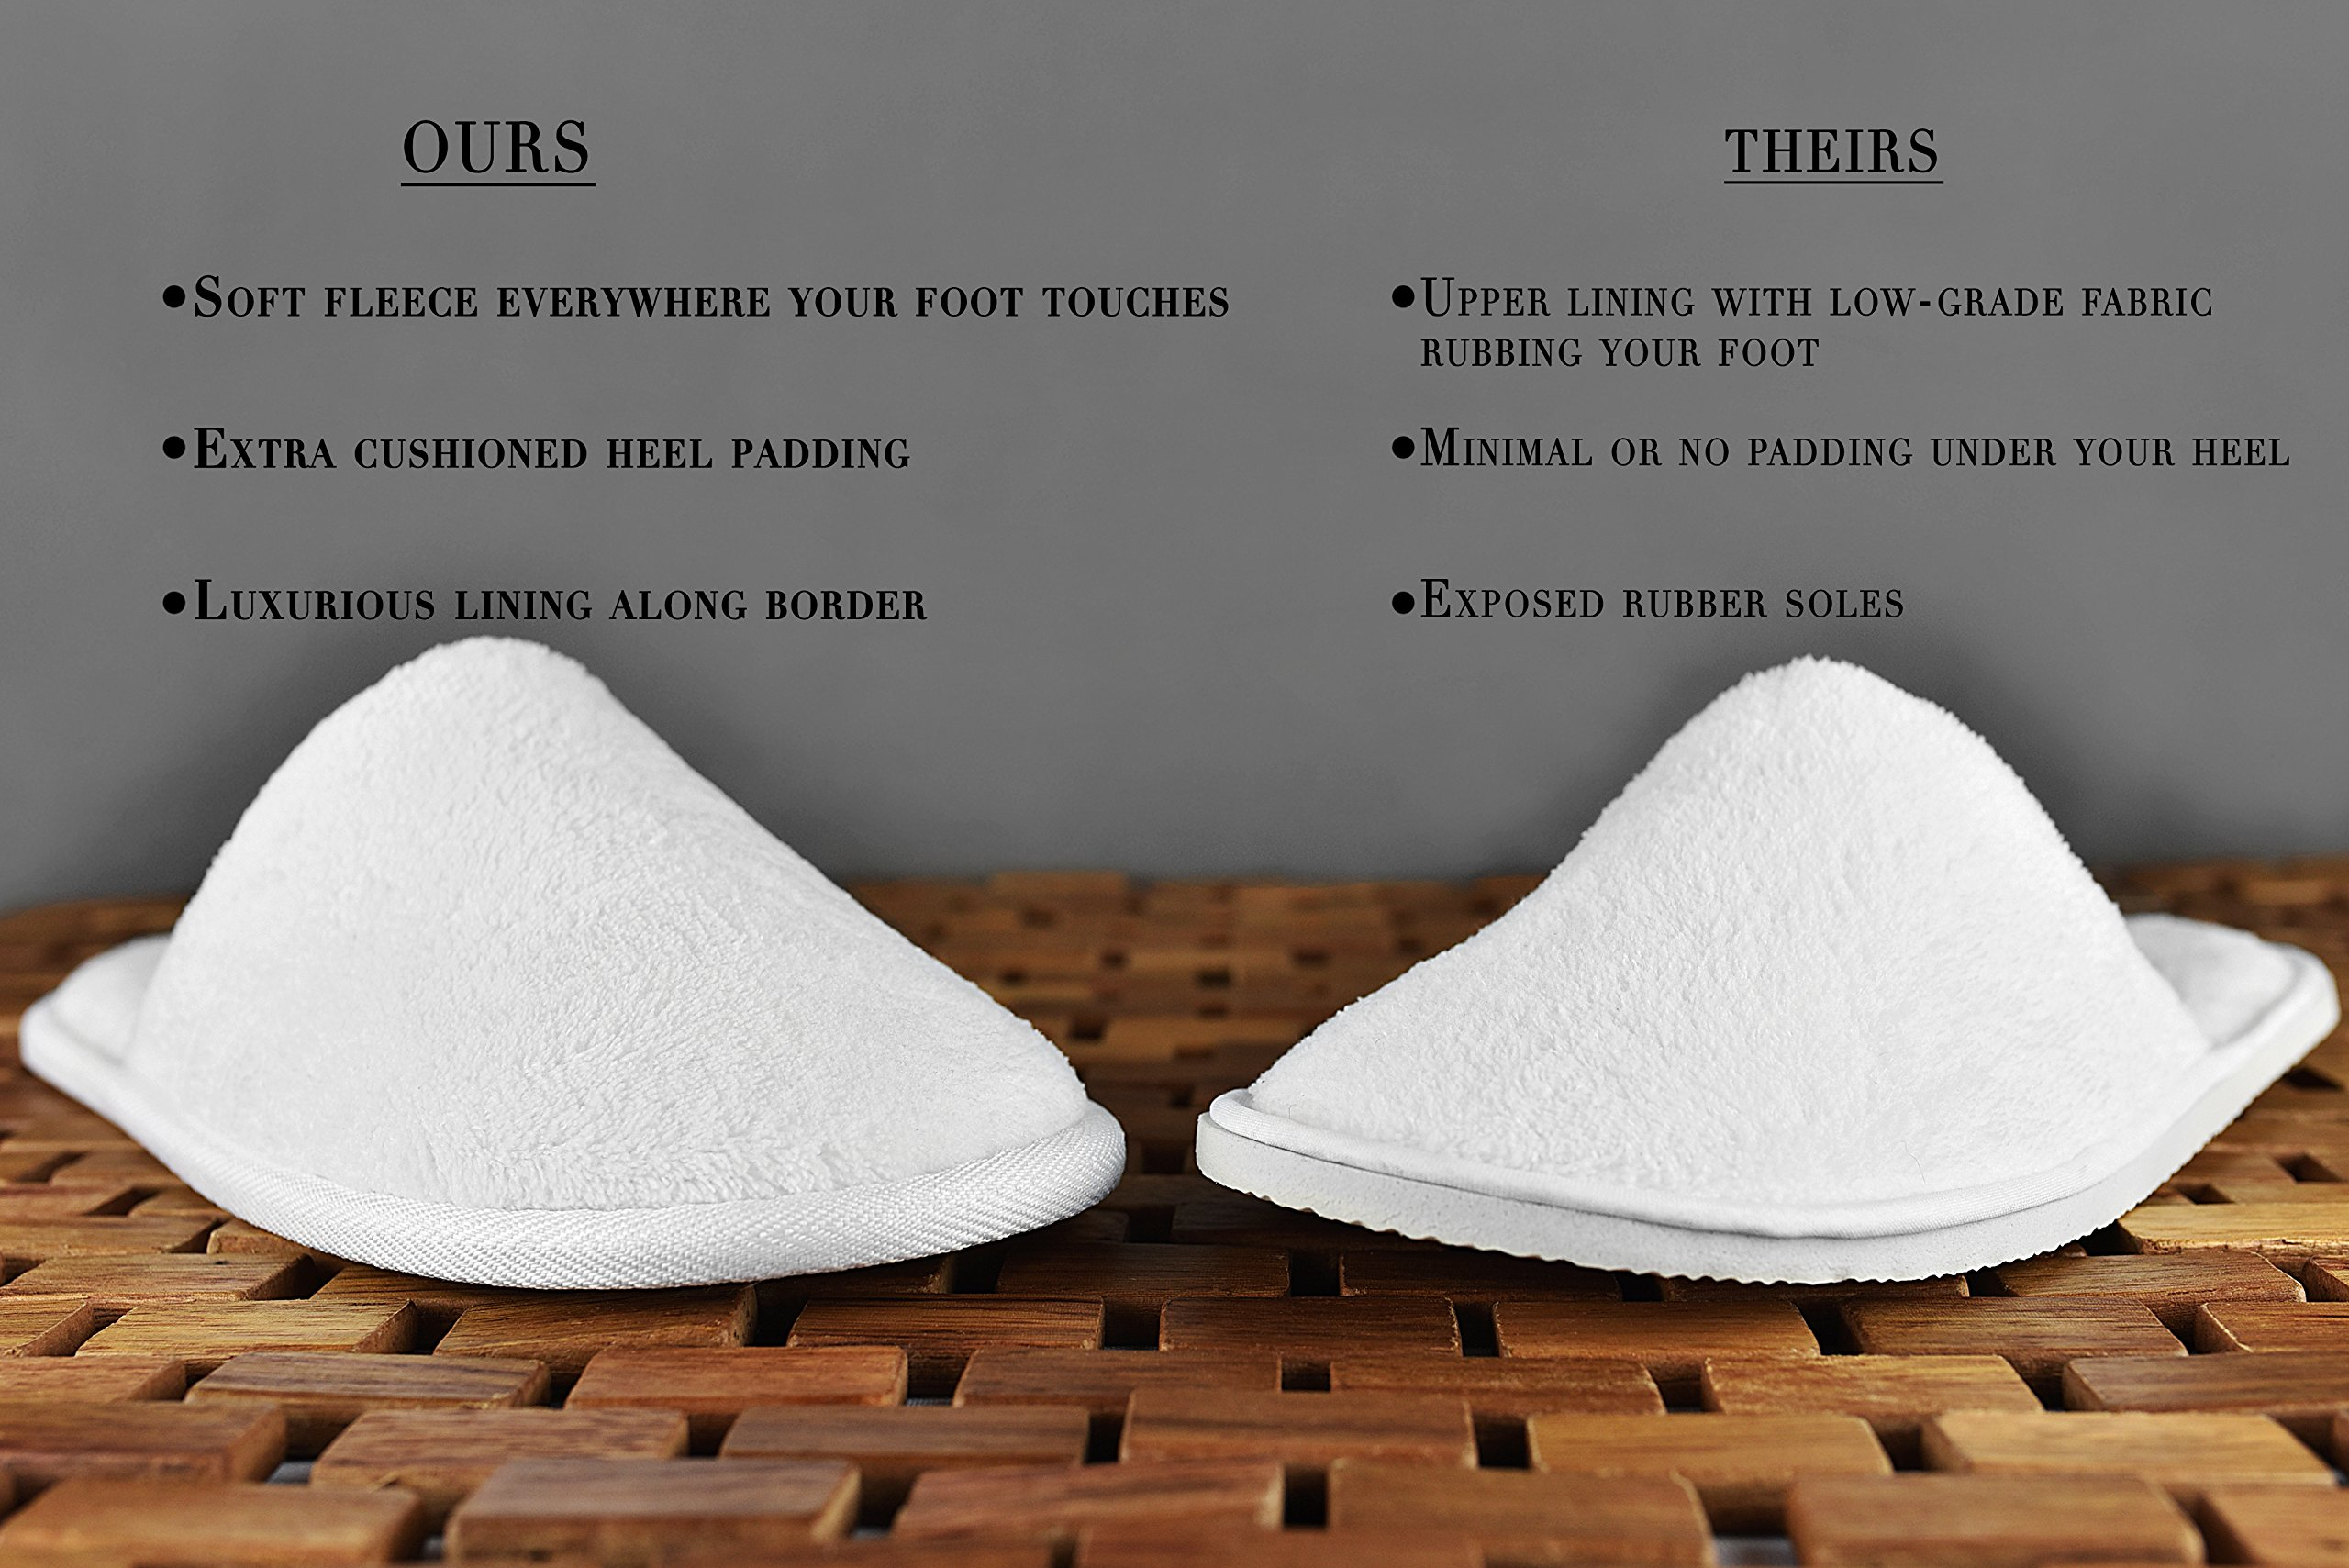 THE RESORT BOUTIQUE White House Slippers (12-Pack) Men and Women | Luxury, Spa-Quality House Shoes | Home, Travel, Gym | Non-Slip Sole, Soft Cushioned Padding | Small & Large Set by THE RESORT BOUTIQUE (Image #8)